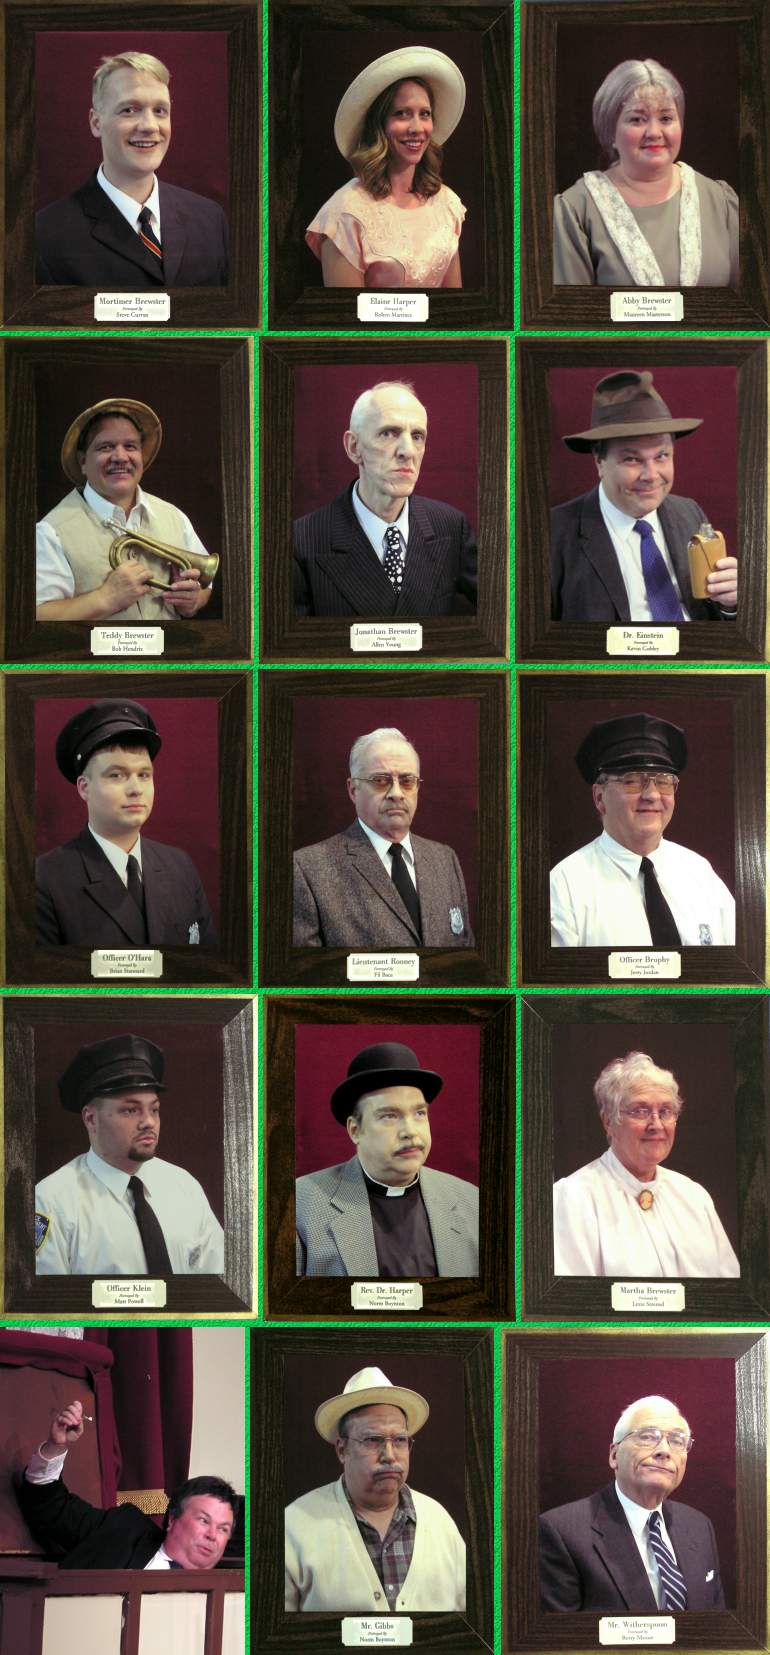 """Arsenic and Old Lace"" Cast Portraits - 09/1/03"